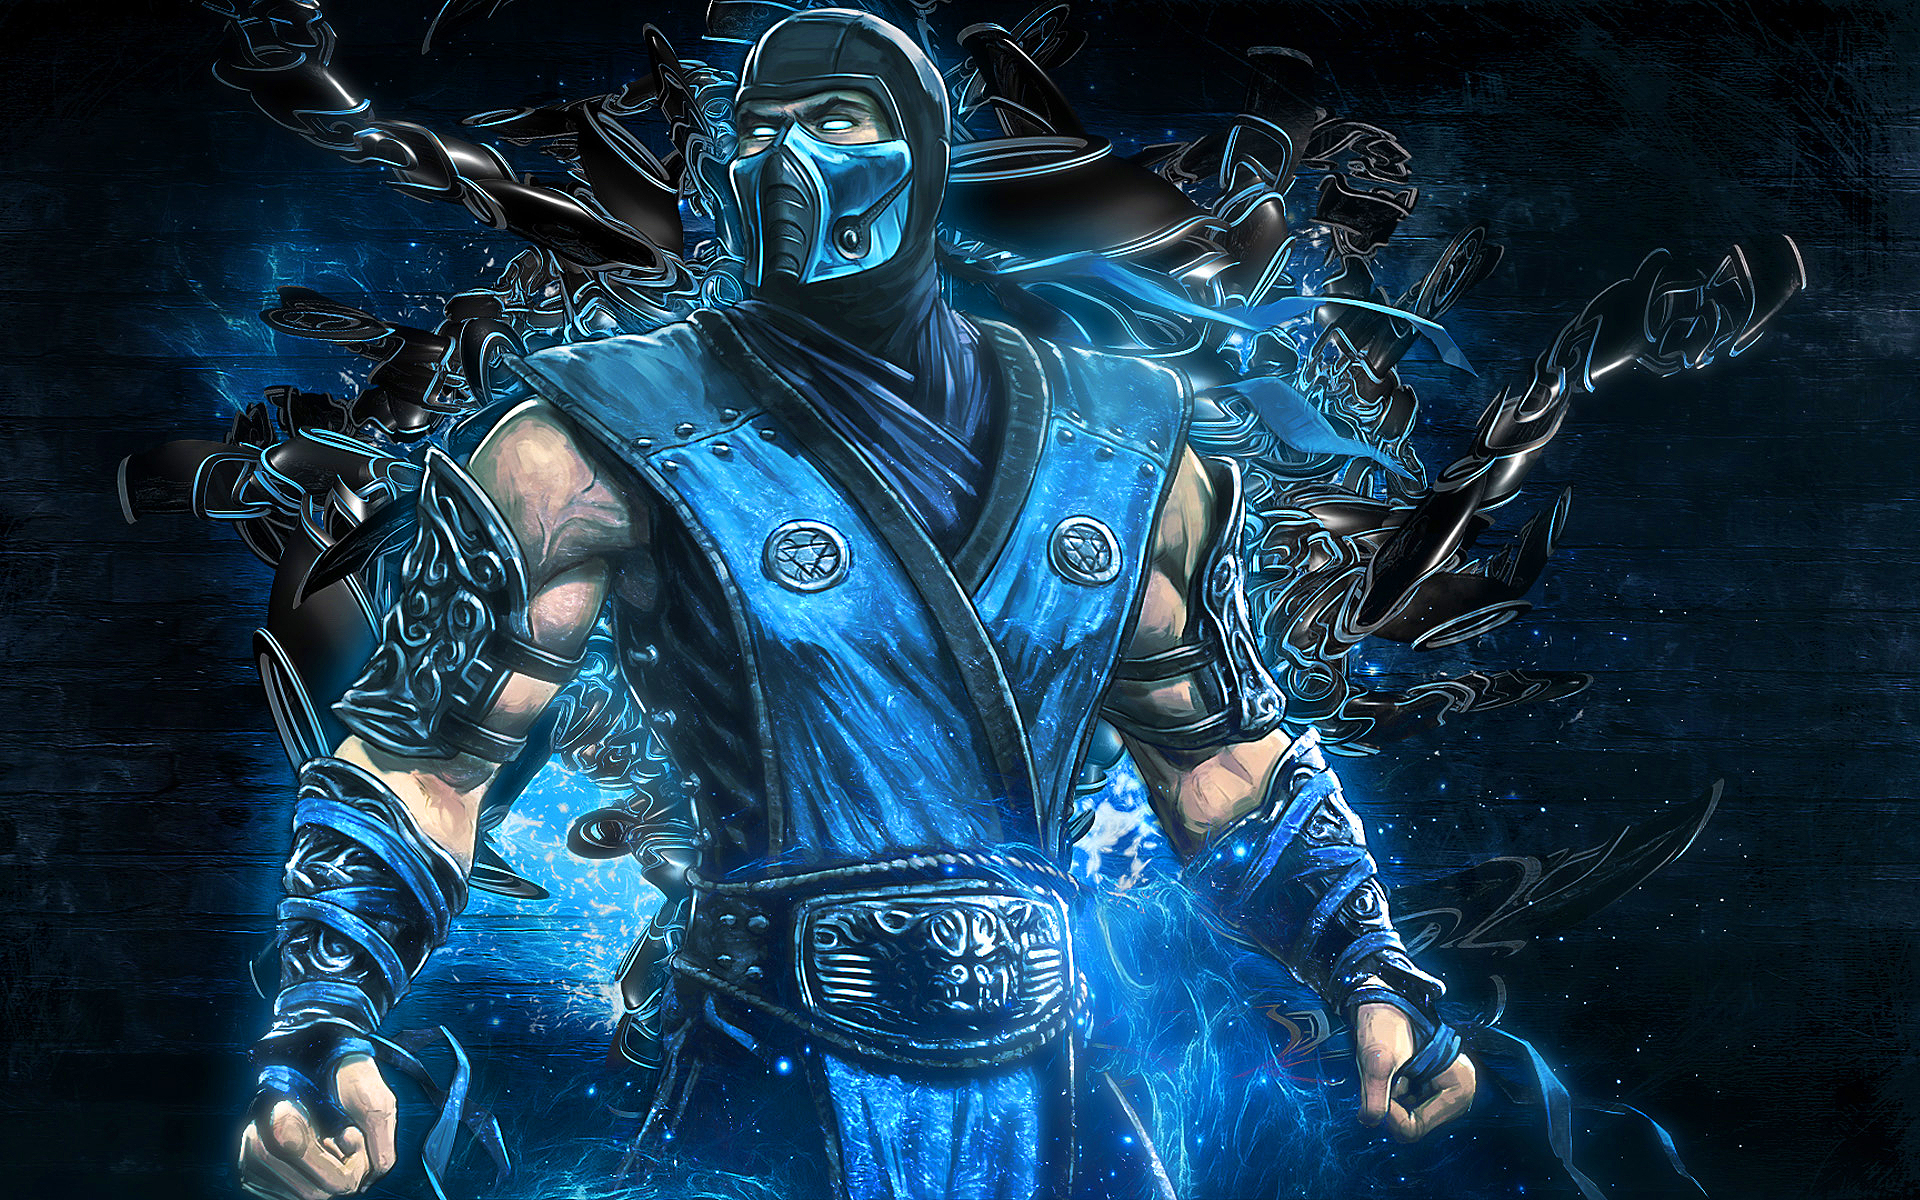 Scorpion And Sub Zero Wallpaper 1920x1200